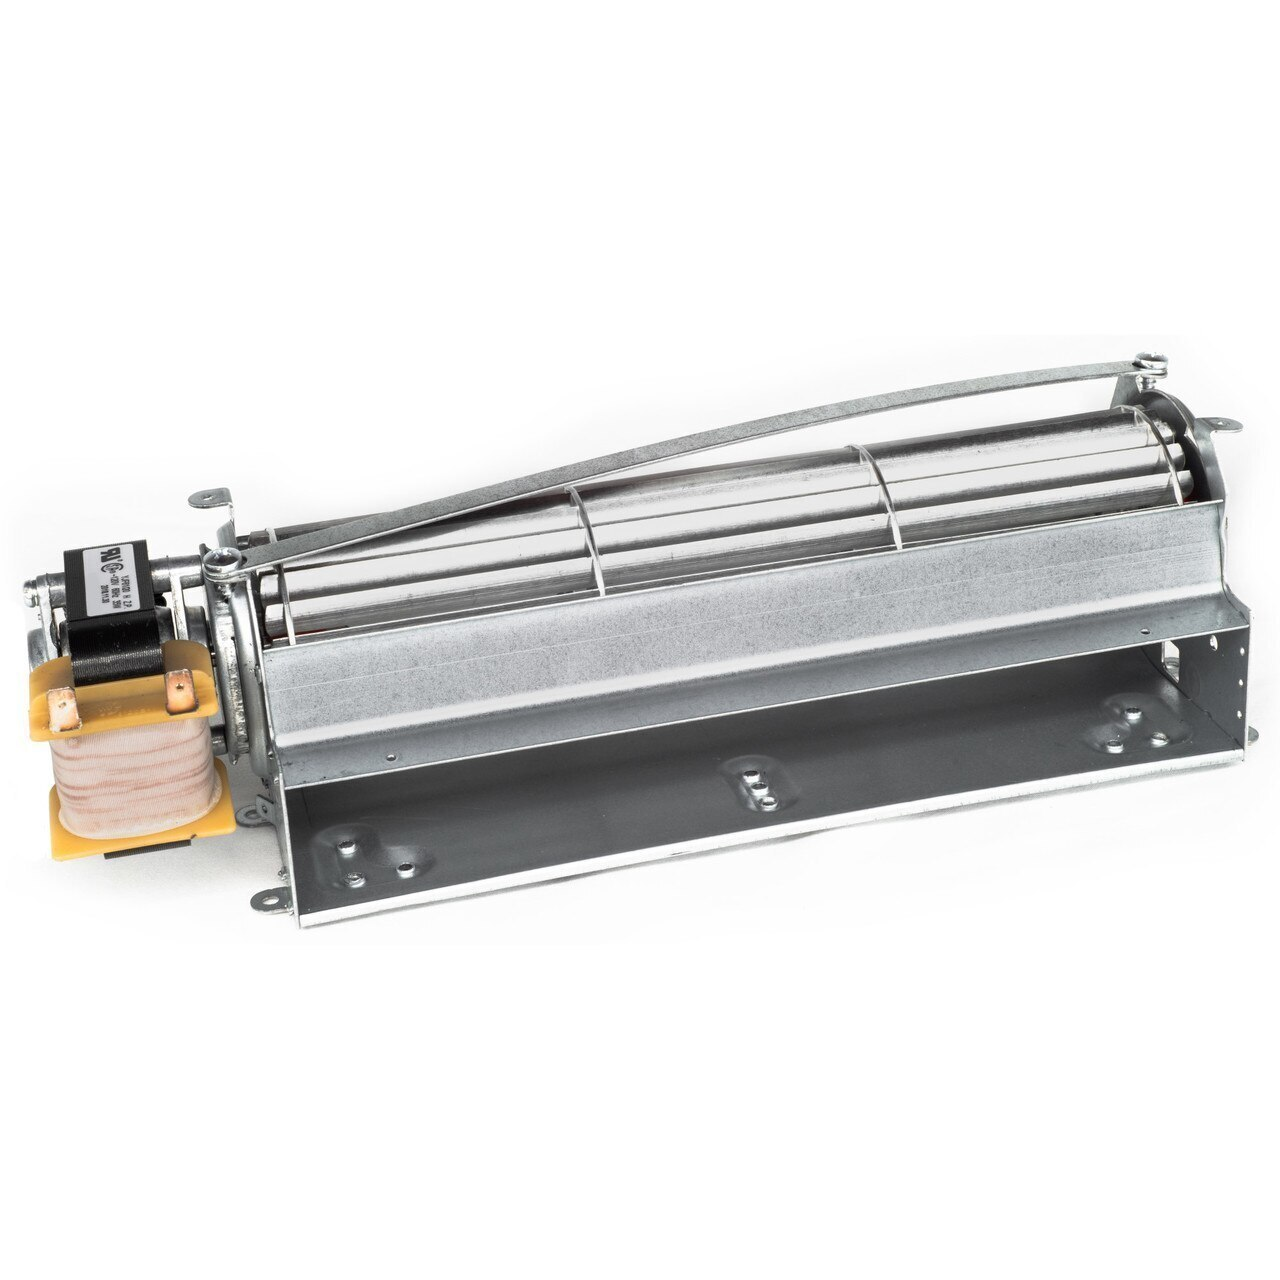 44070 Aftermarket Convection Blower for SBI Fireplaces